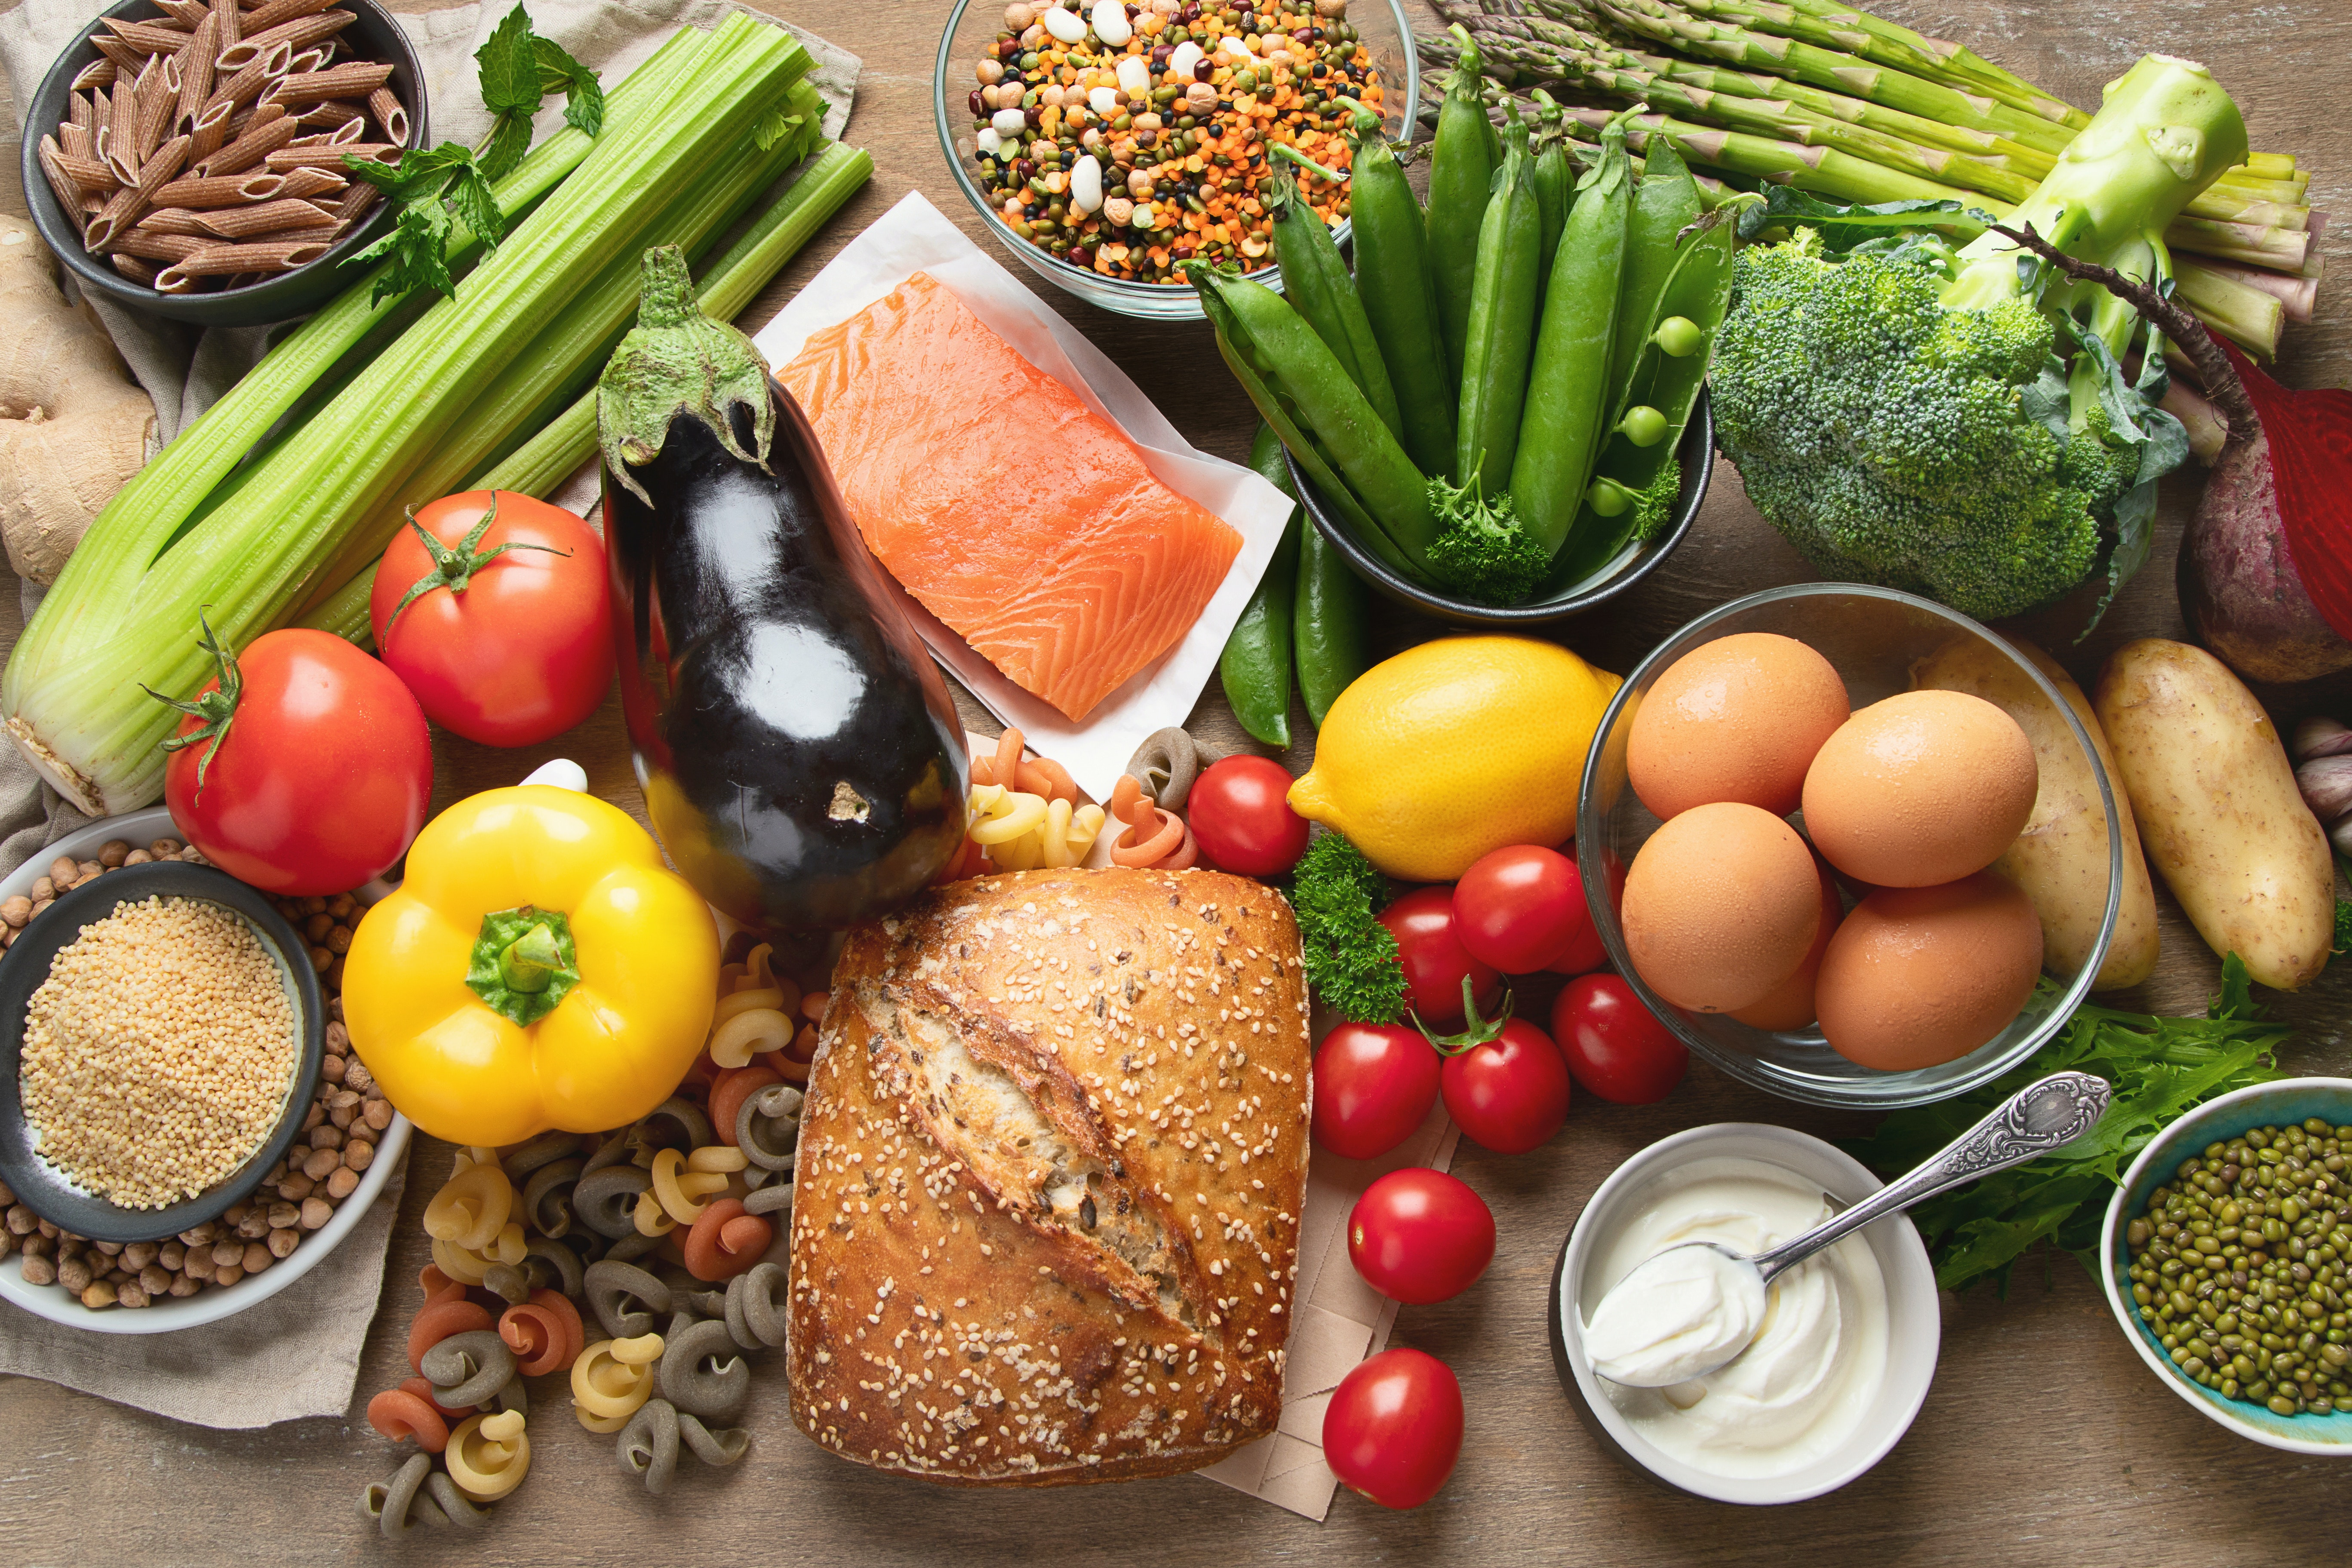 counter-full-of-healthy-food